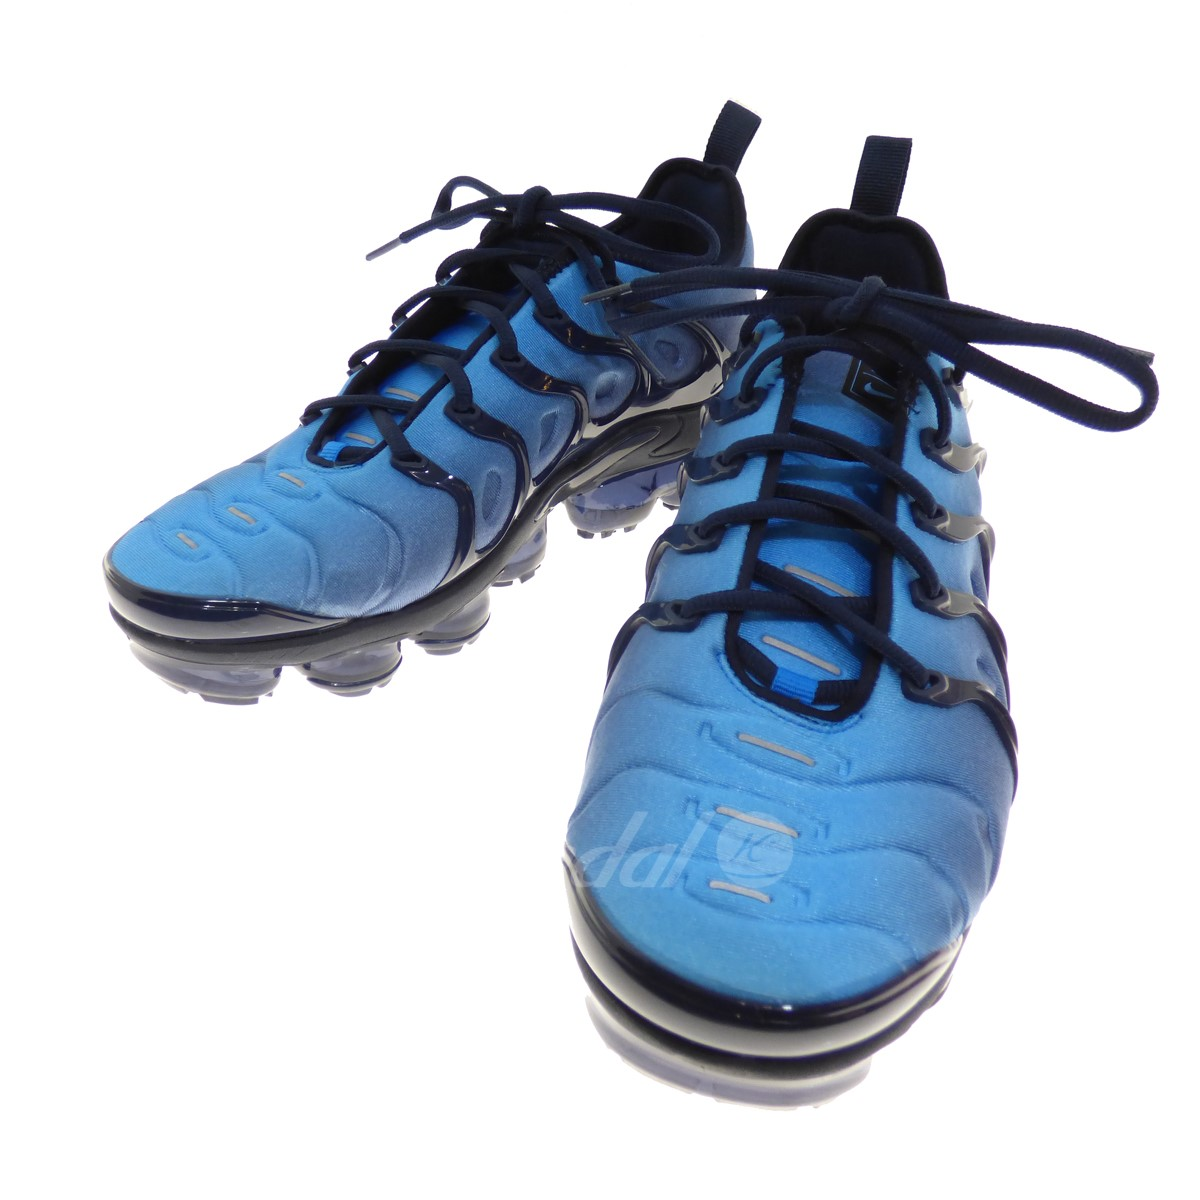 a1a0e49426b62 ... official nike air vapormax plus 924453 401 sneakers blue size 26. 5cm  nike 43134 17b8b